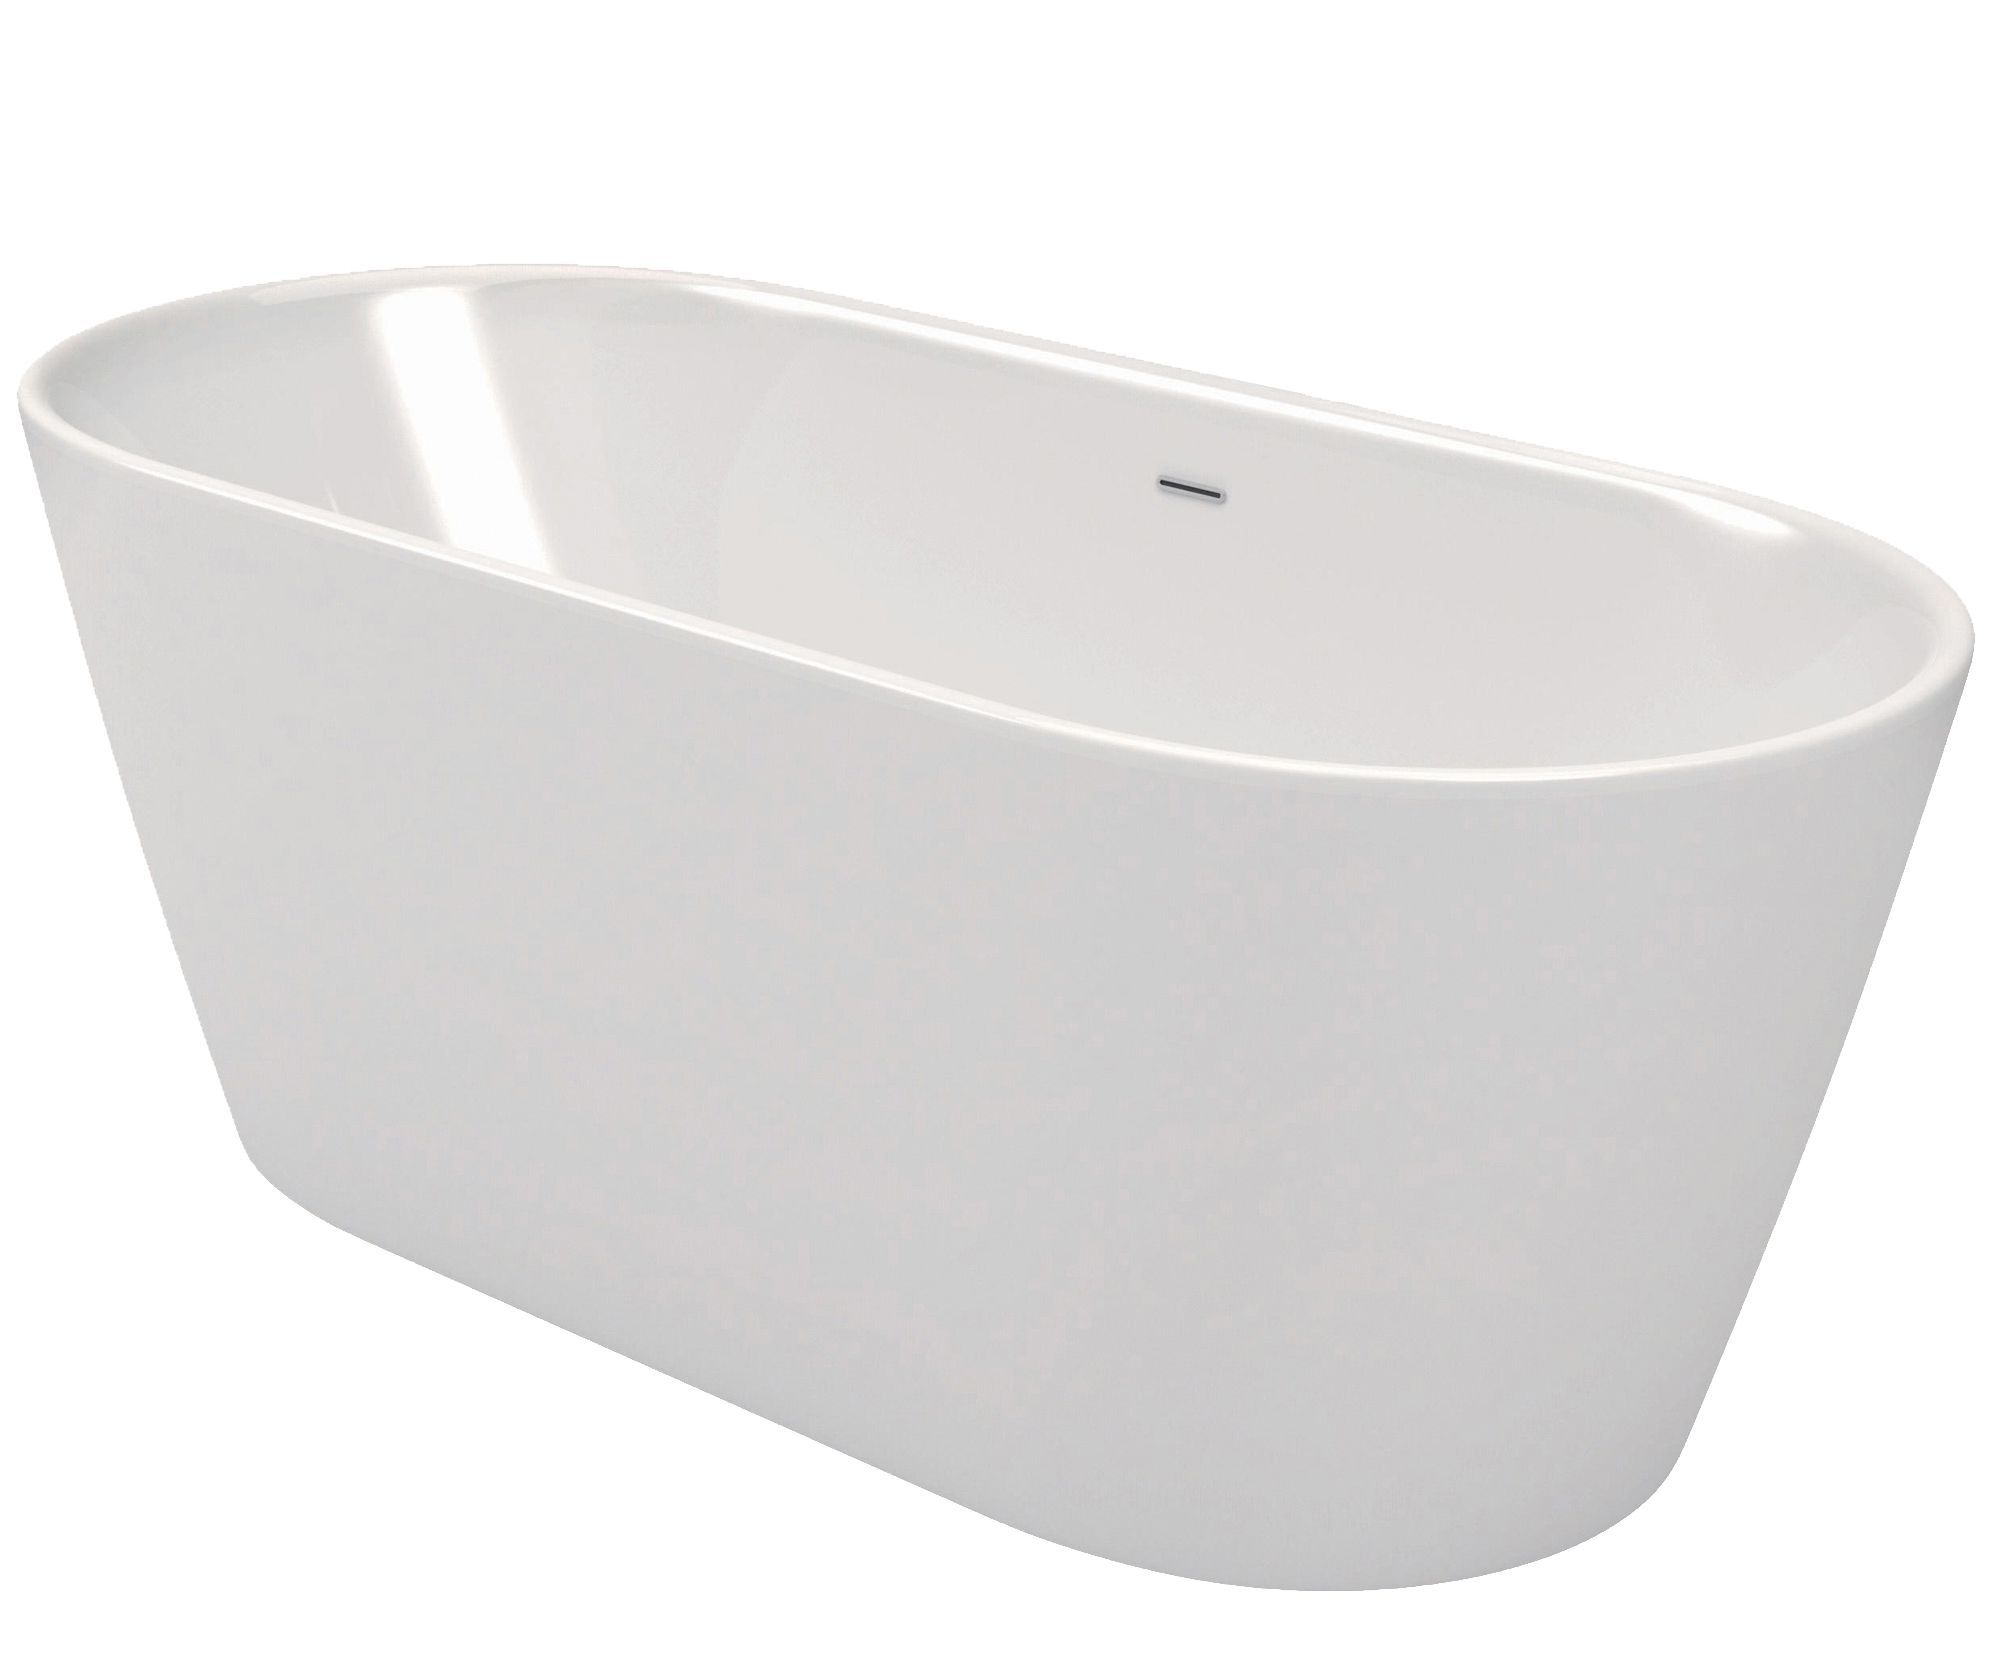 B and q cooke and lewis bathrooms - Cooke Lewis Duchess Acrylic Oval Freestanding Bath L 1580mm W 740mm Departments Diy At B Q